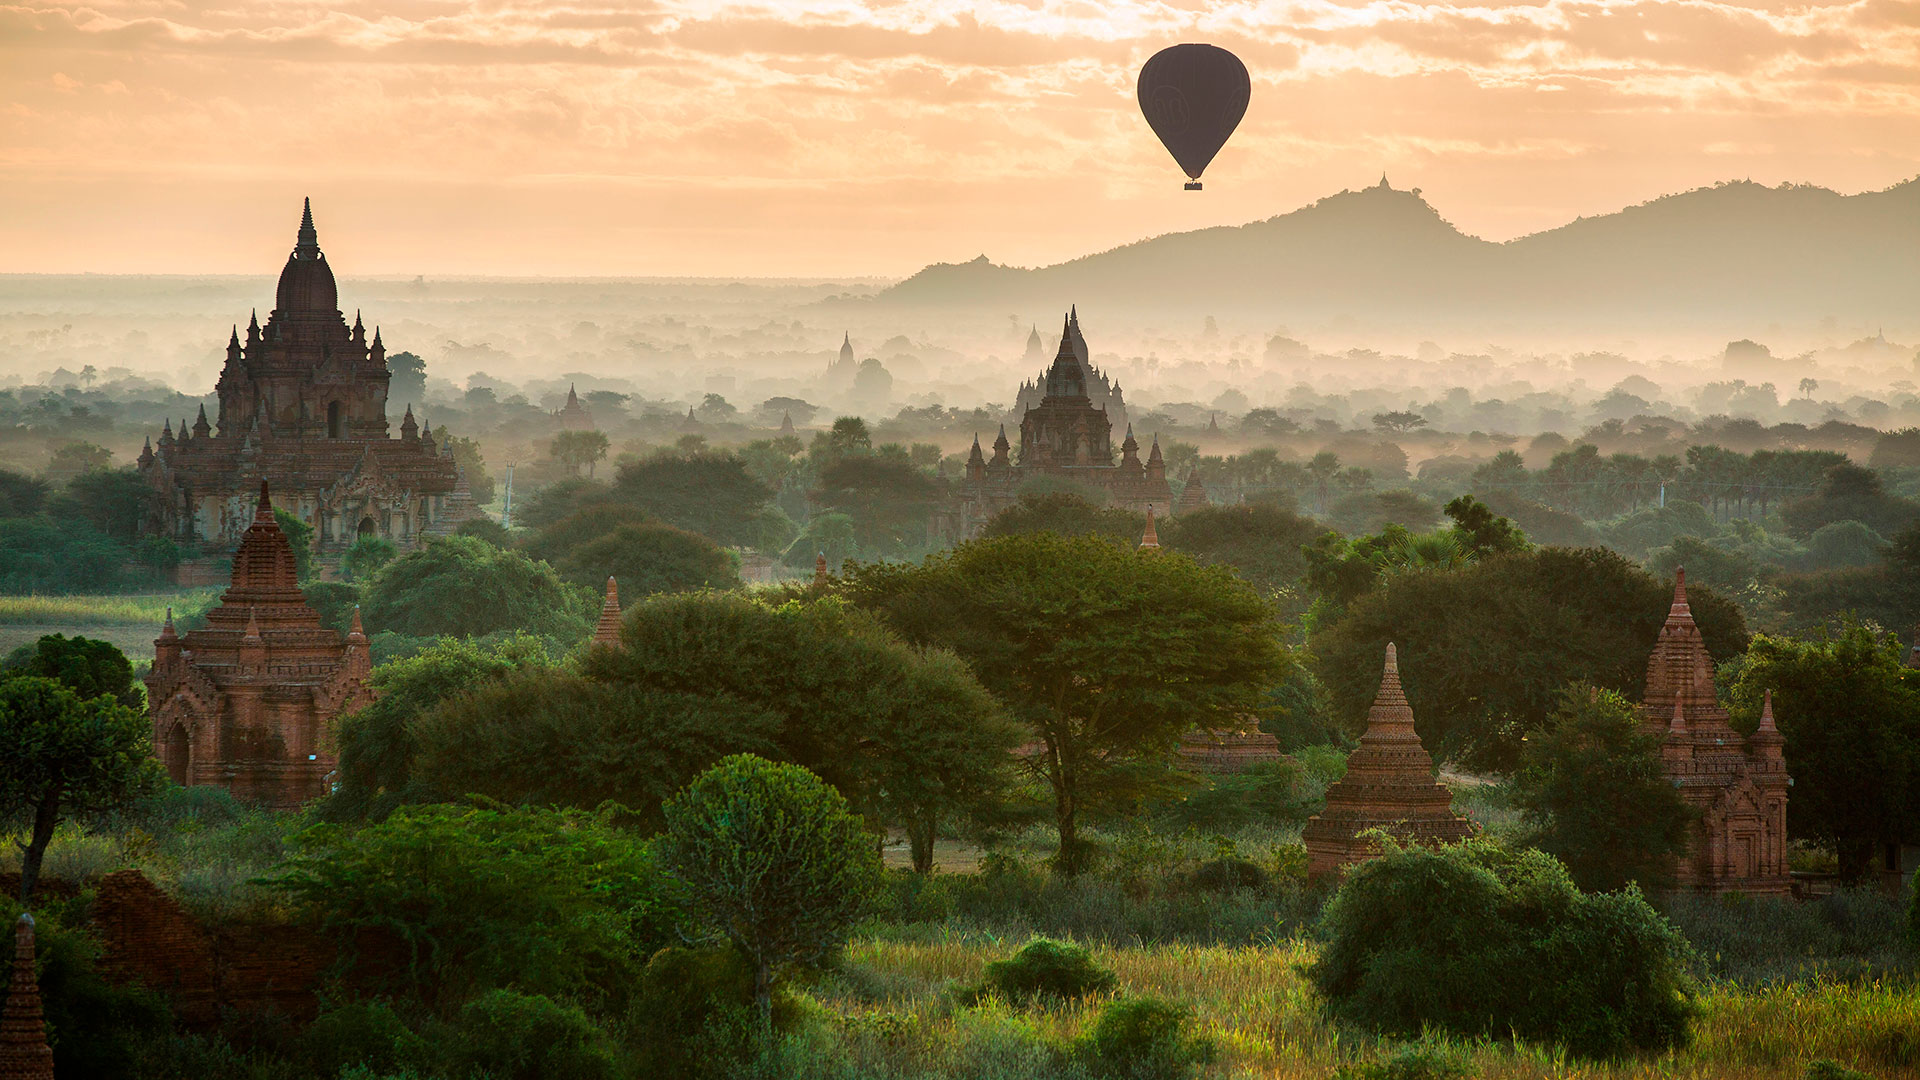 Balloons over the temples of Bagan at dawn, Myanmar